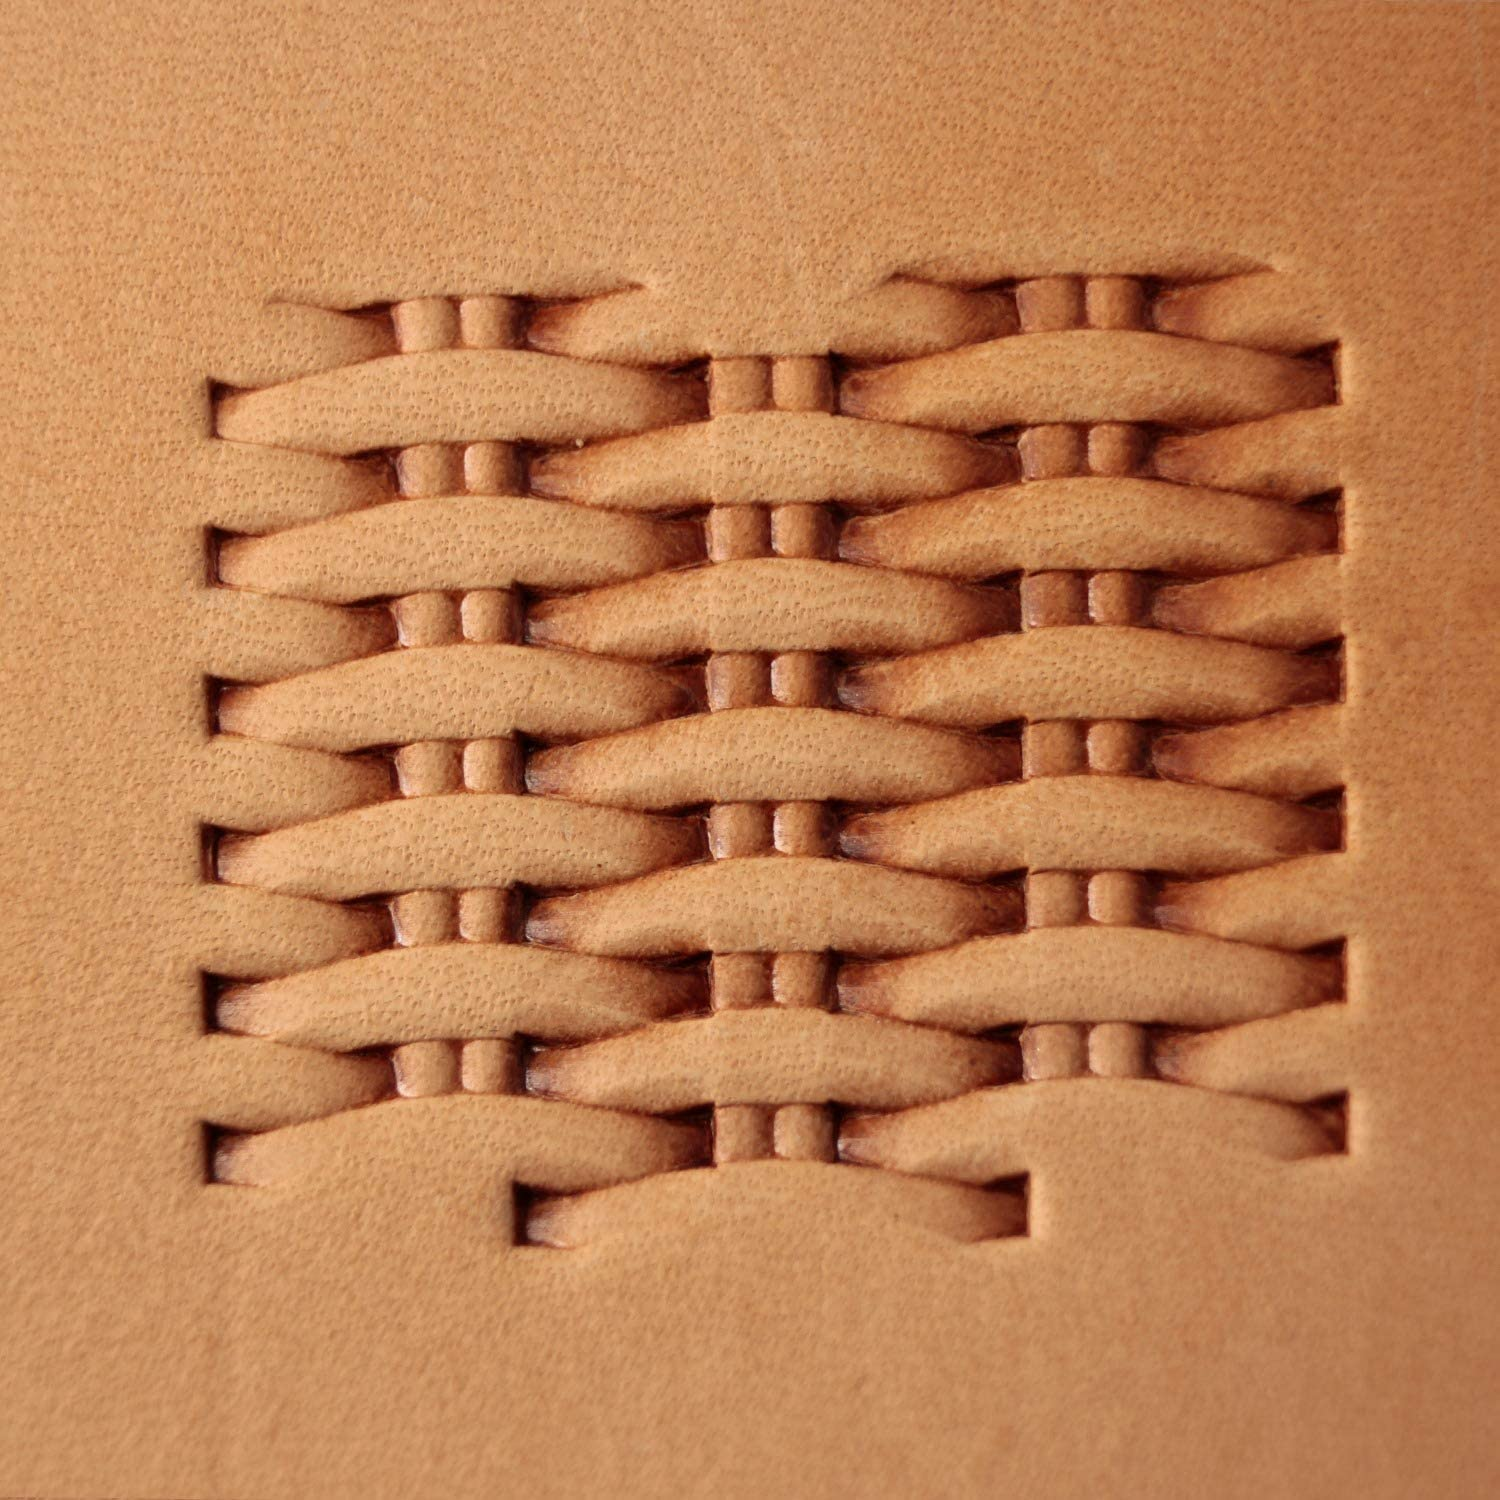 Basket Weave Leather Stamp Tool Stamps Stamping Carving Punches Tools Craft Leathercrafting